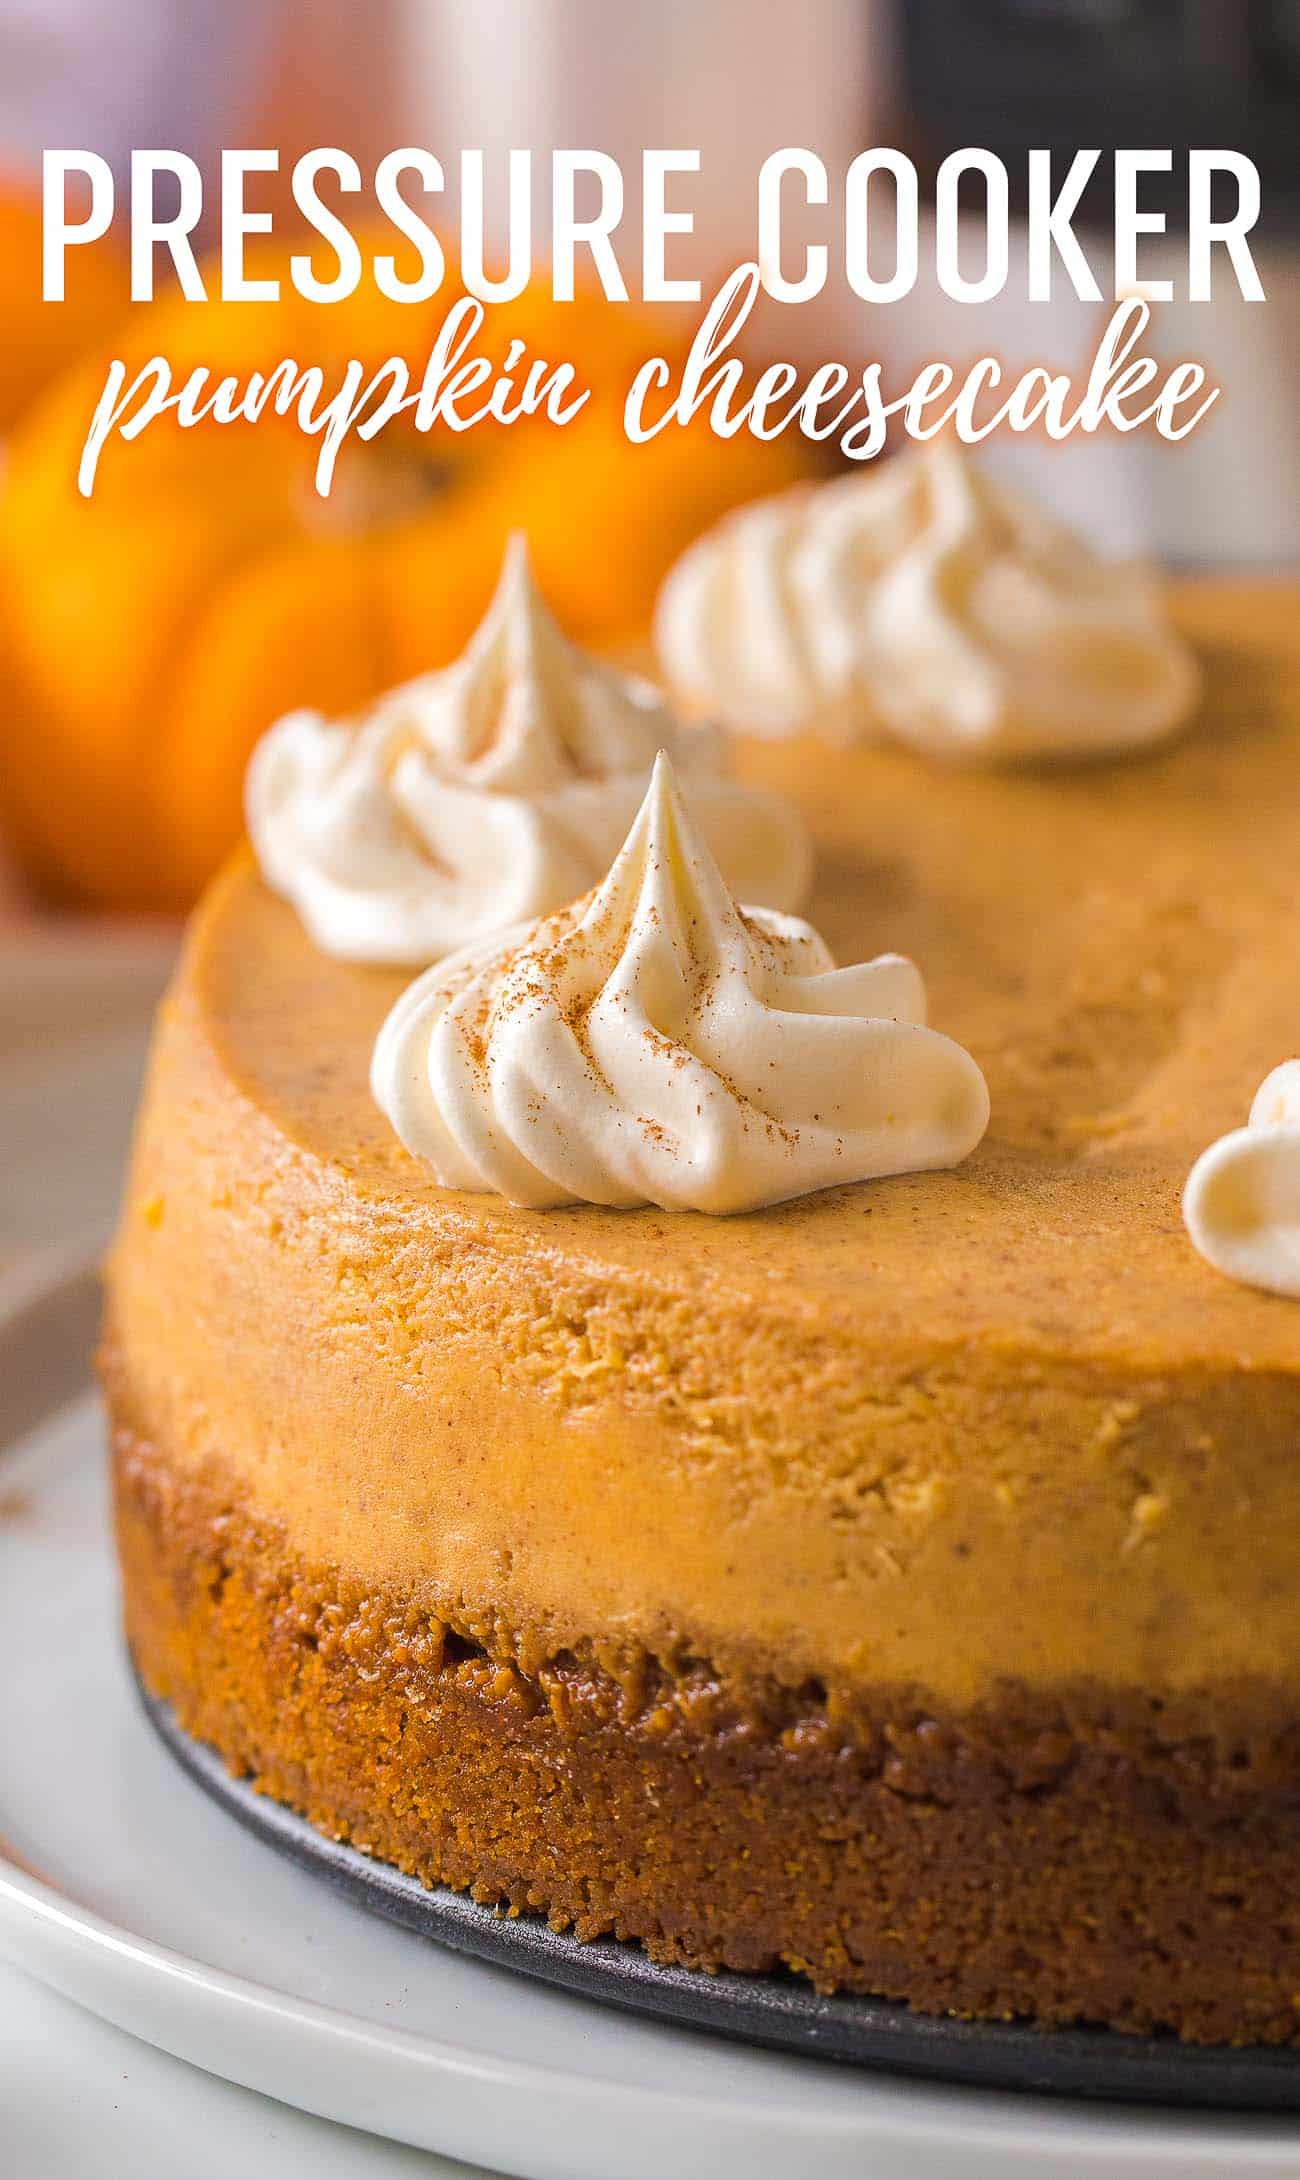 Pressure Cooker Pumpkin Cheesecake Recipe - Easy pressure cooker pumpkin cheesecake!